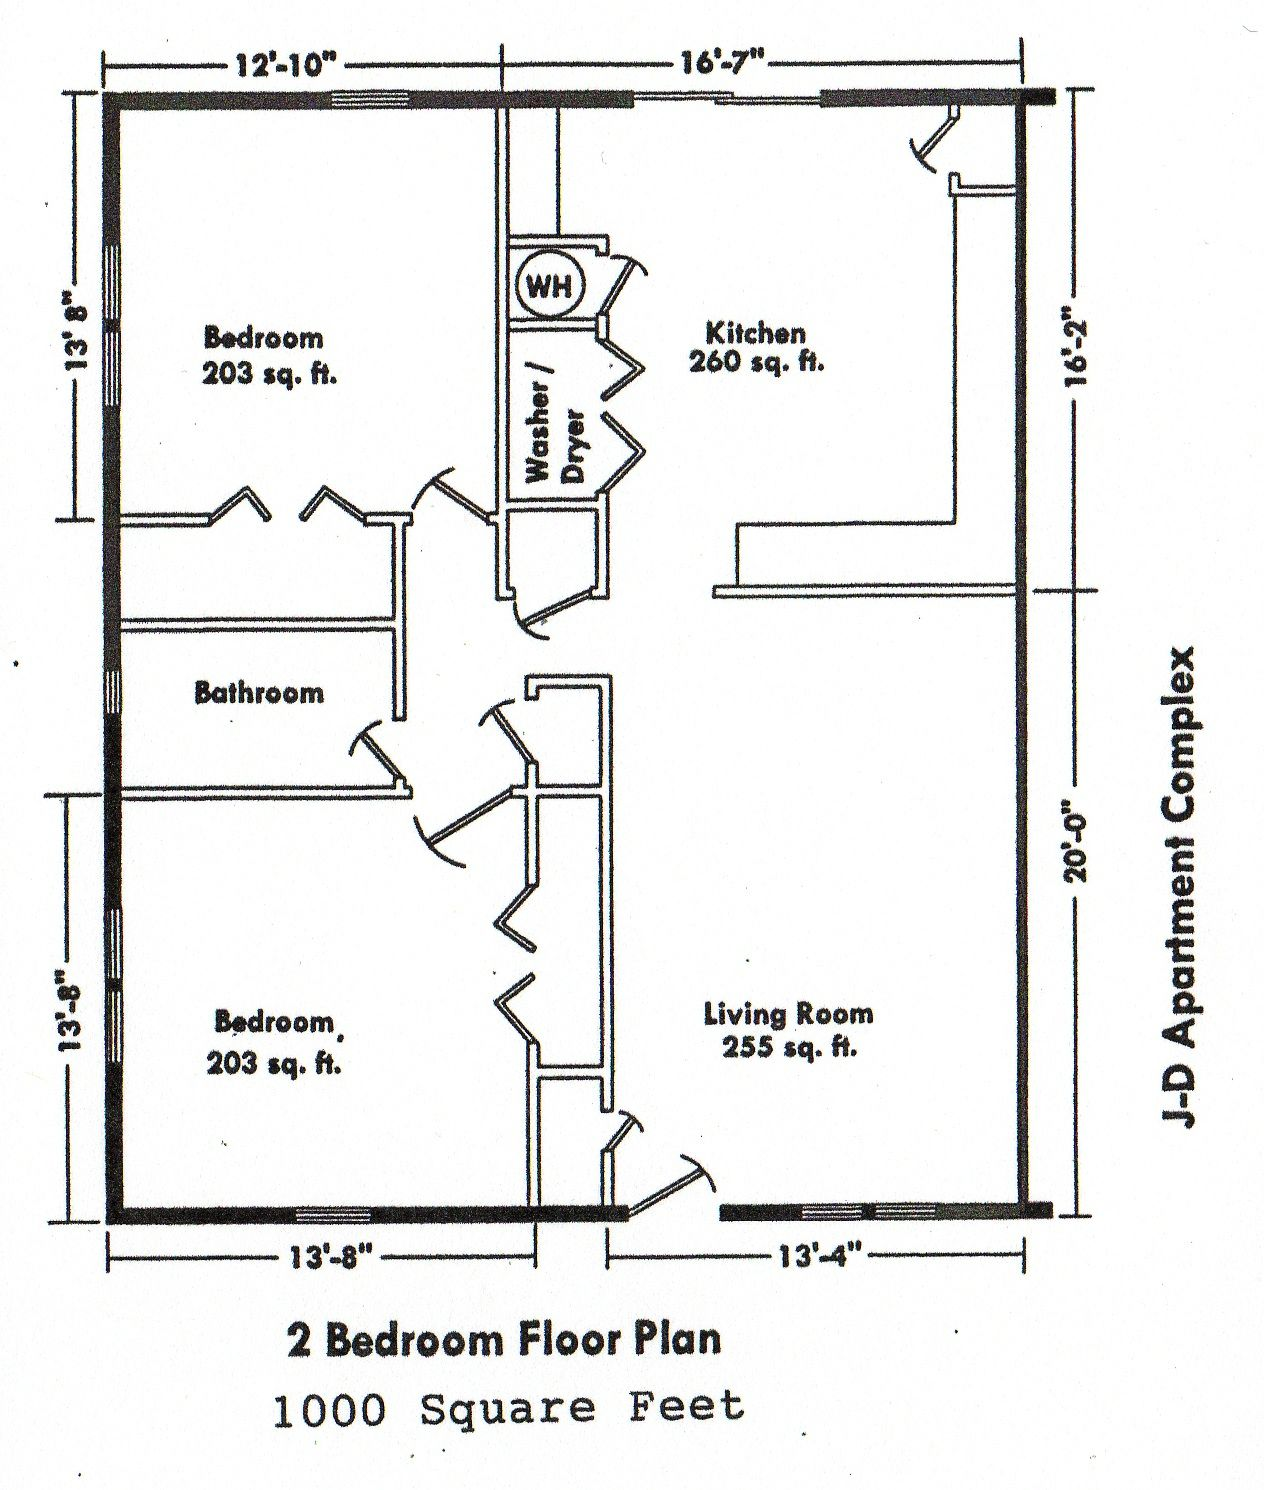 Small house floor plans 2 bedrooms master bedroom suite for Small master bedroom plan